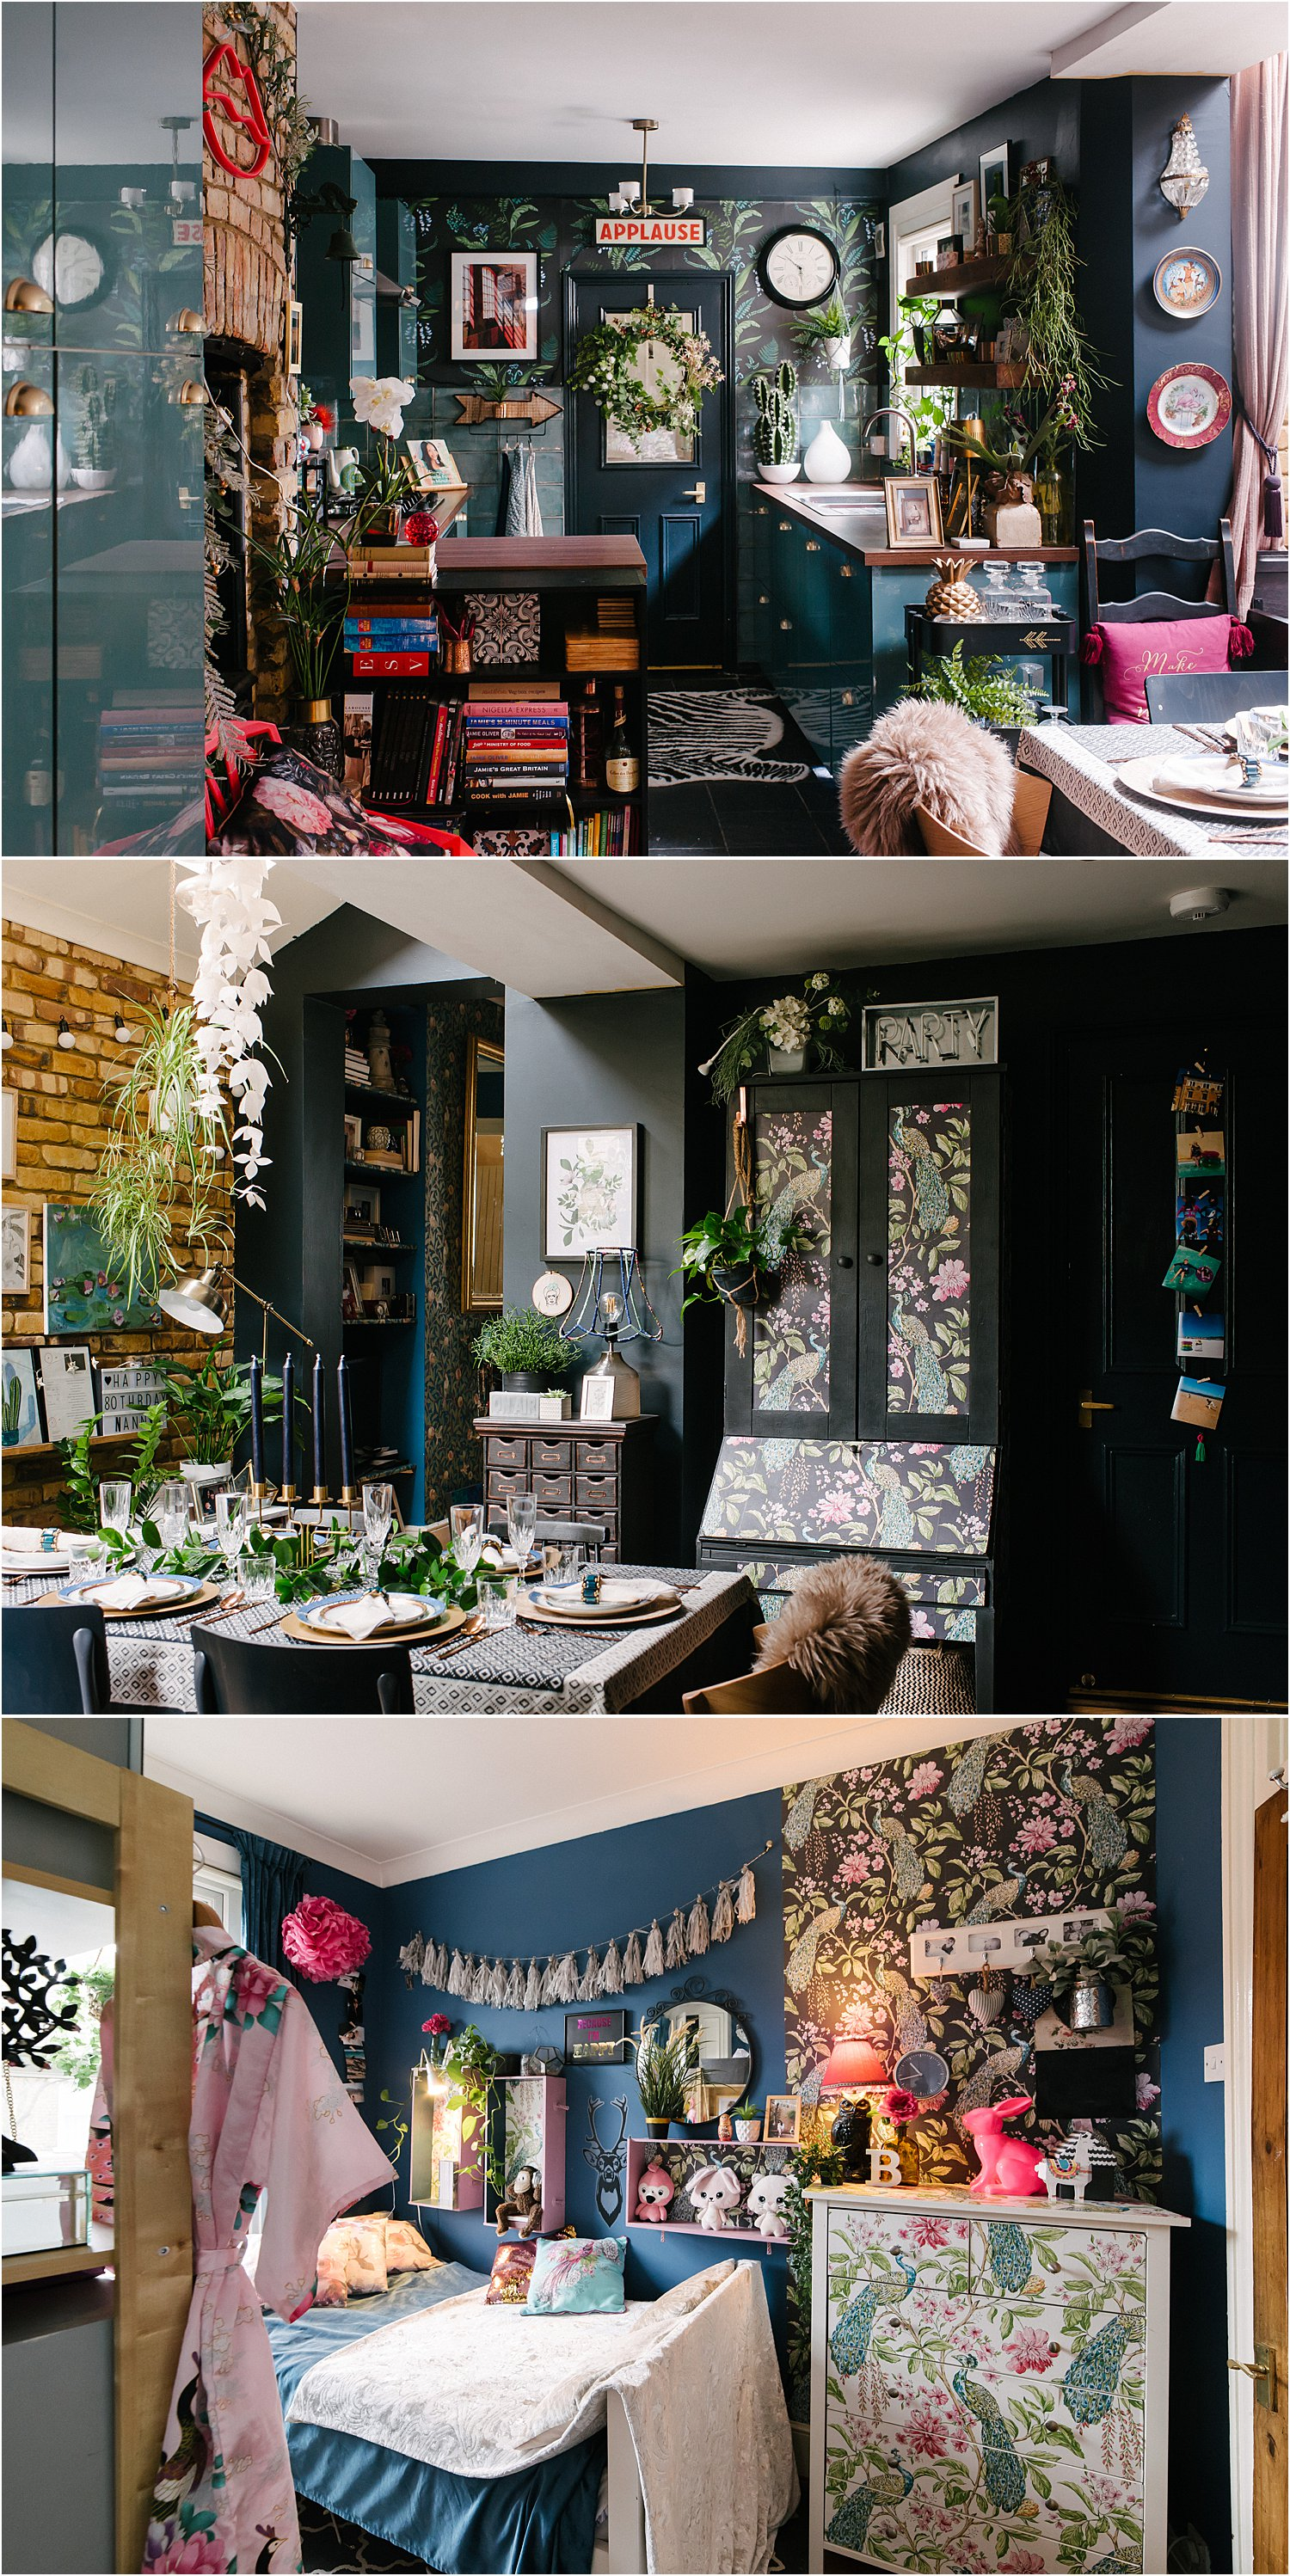 3-reasons-to-try-wallpaper-dark-eclectic-maximalist-interiors-lily-sawyer-layered-home